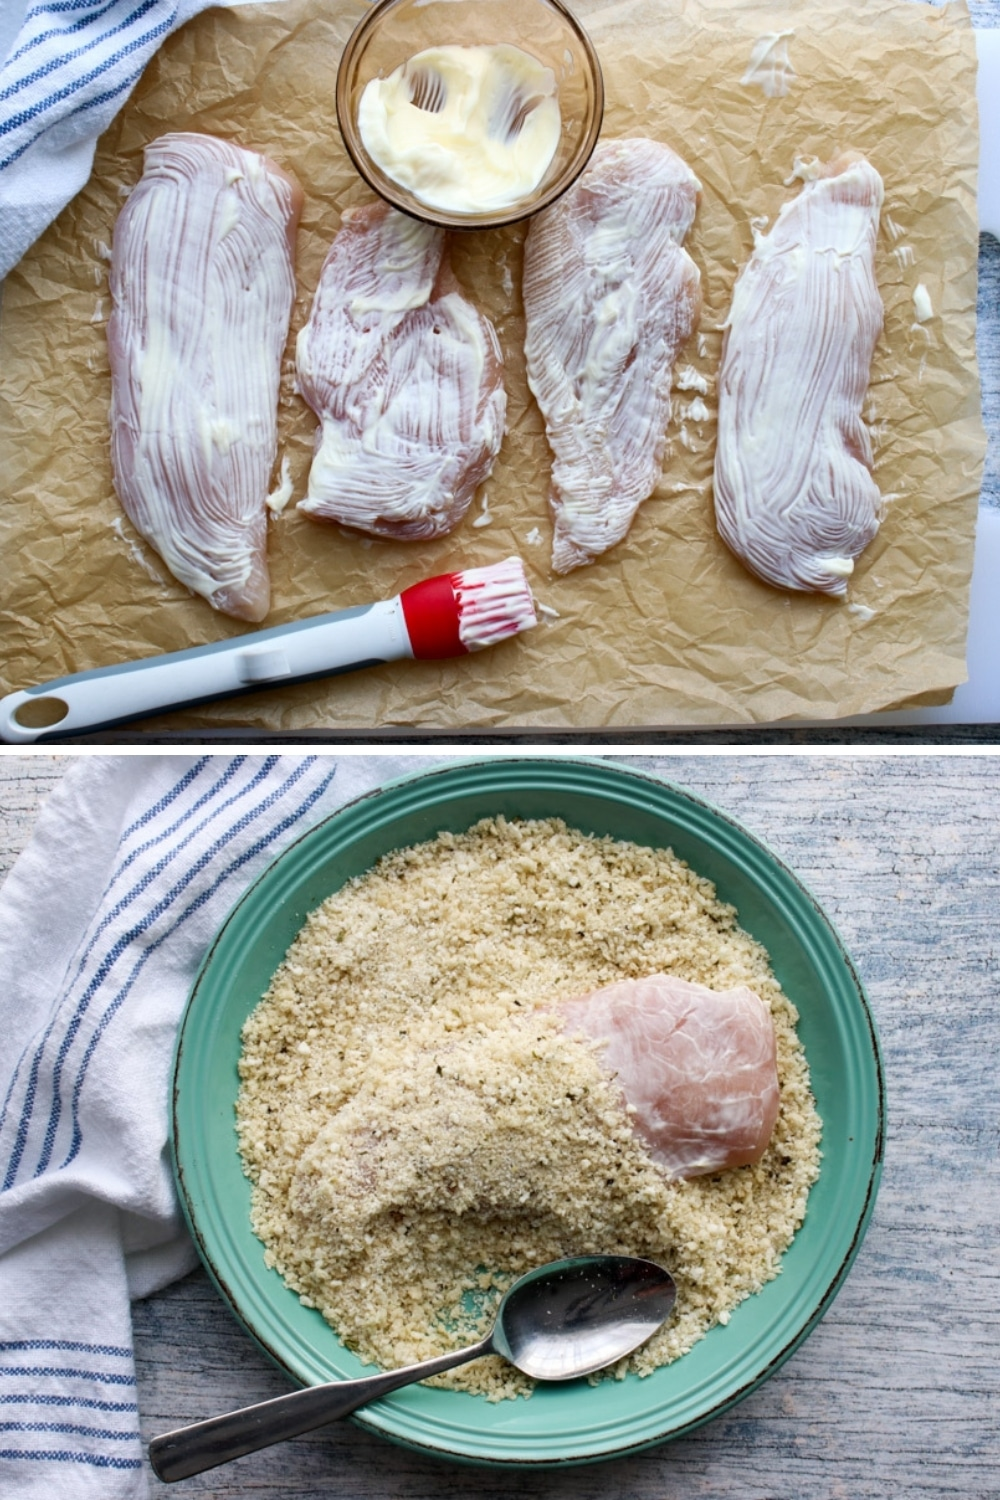 two photos showing how to add mayo and bread crumbs to chicken breasts